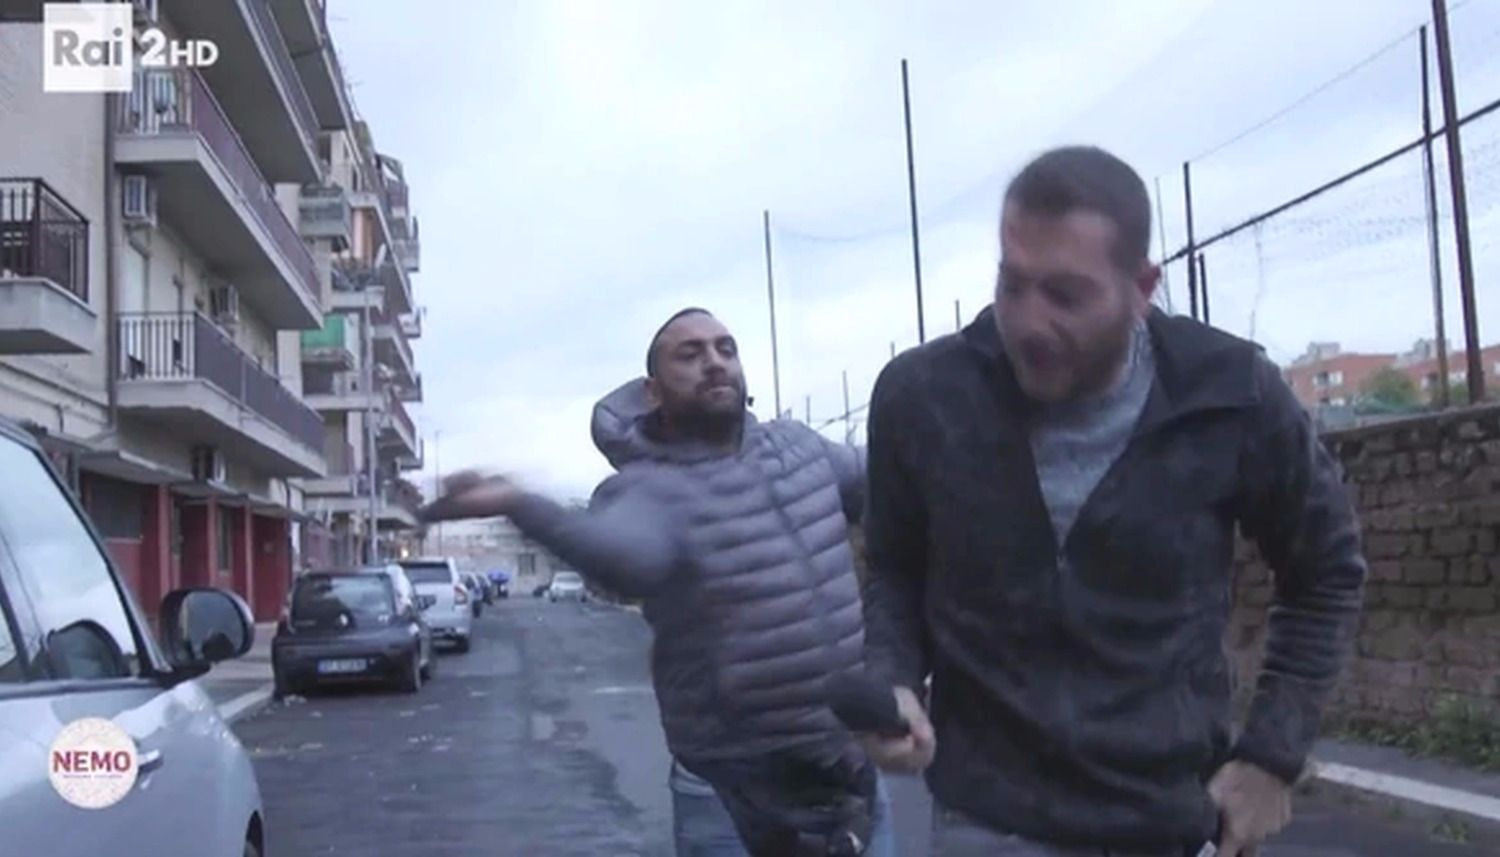 Roma' The most Feared Gypsy Gangster puts a TV reporter in